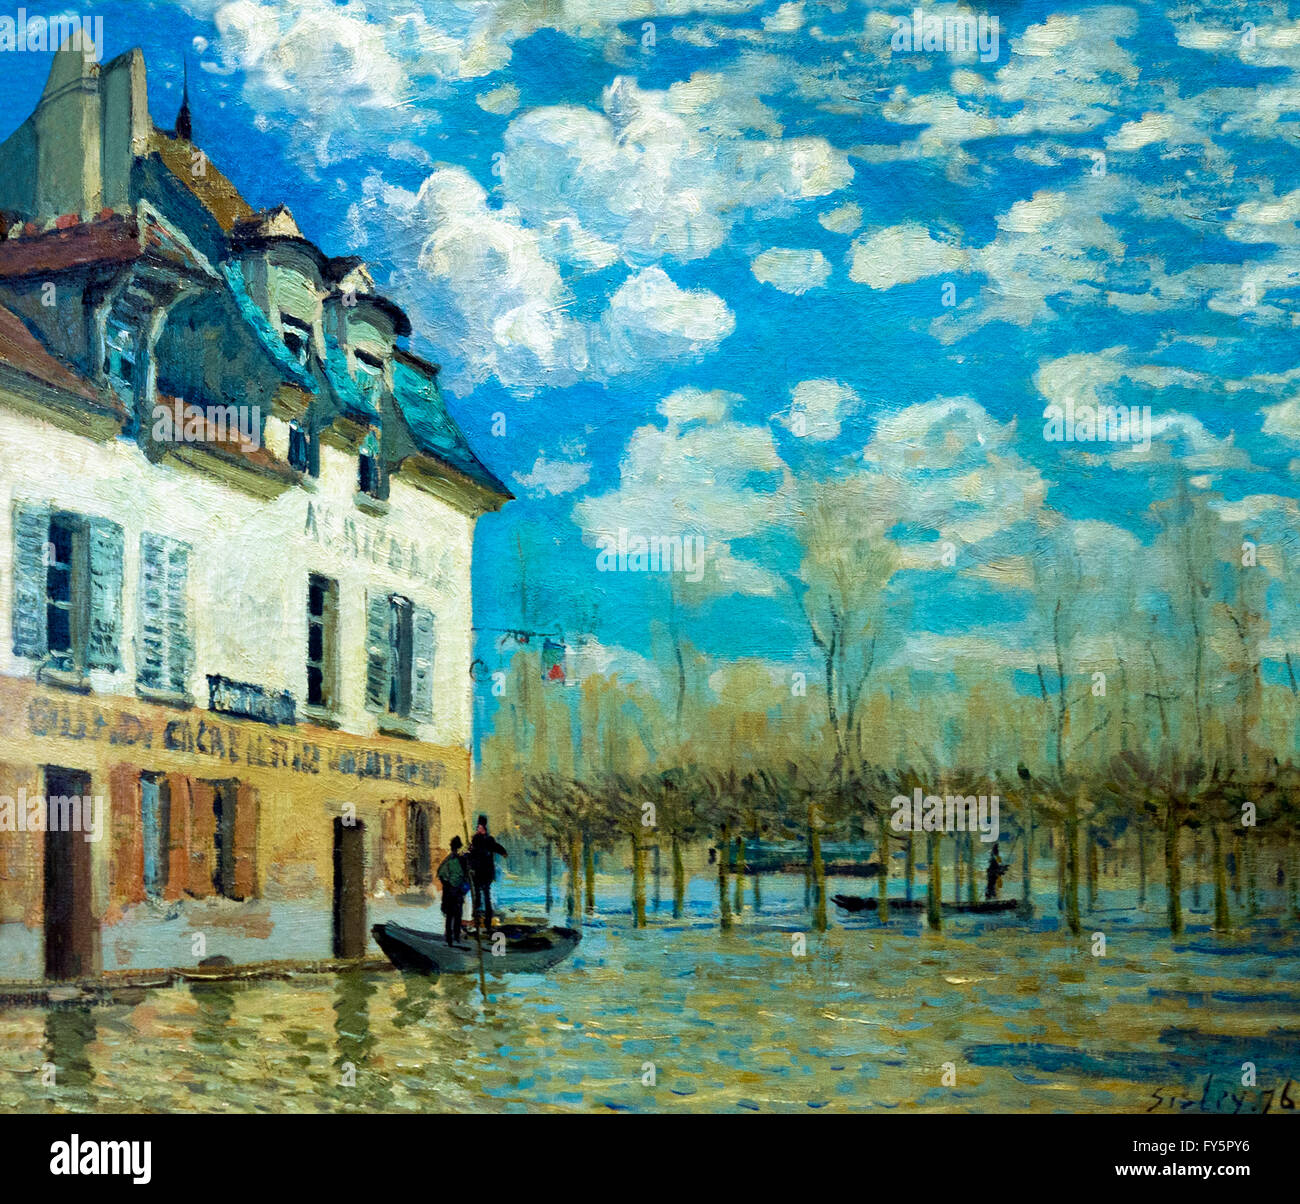 The boat during the flood, La Barque pendant l'inondation, Port-Marly, by Alfred Sisley, 1876,  Musee D'Orsay - Stock Image